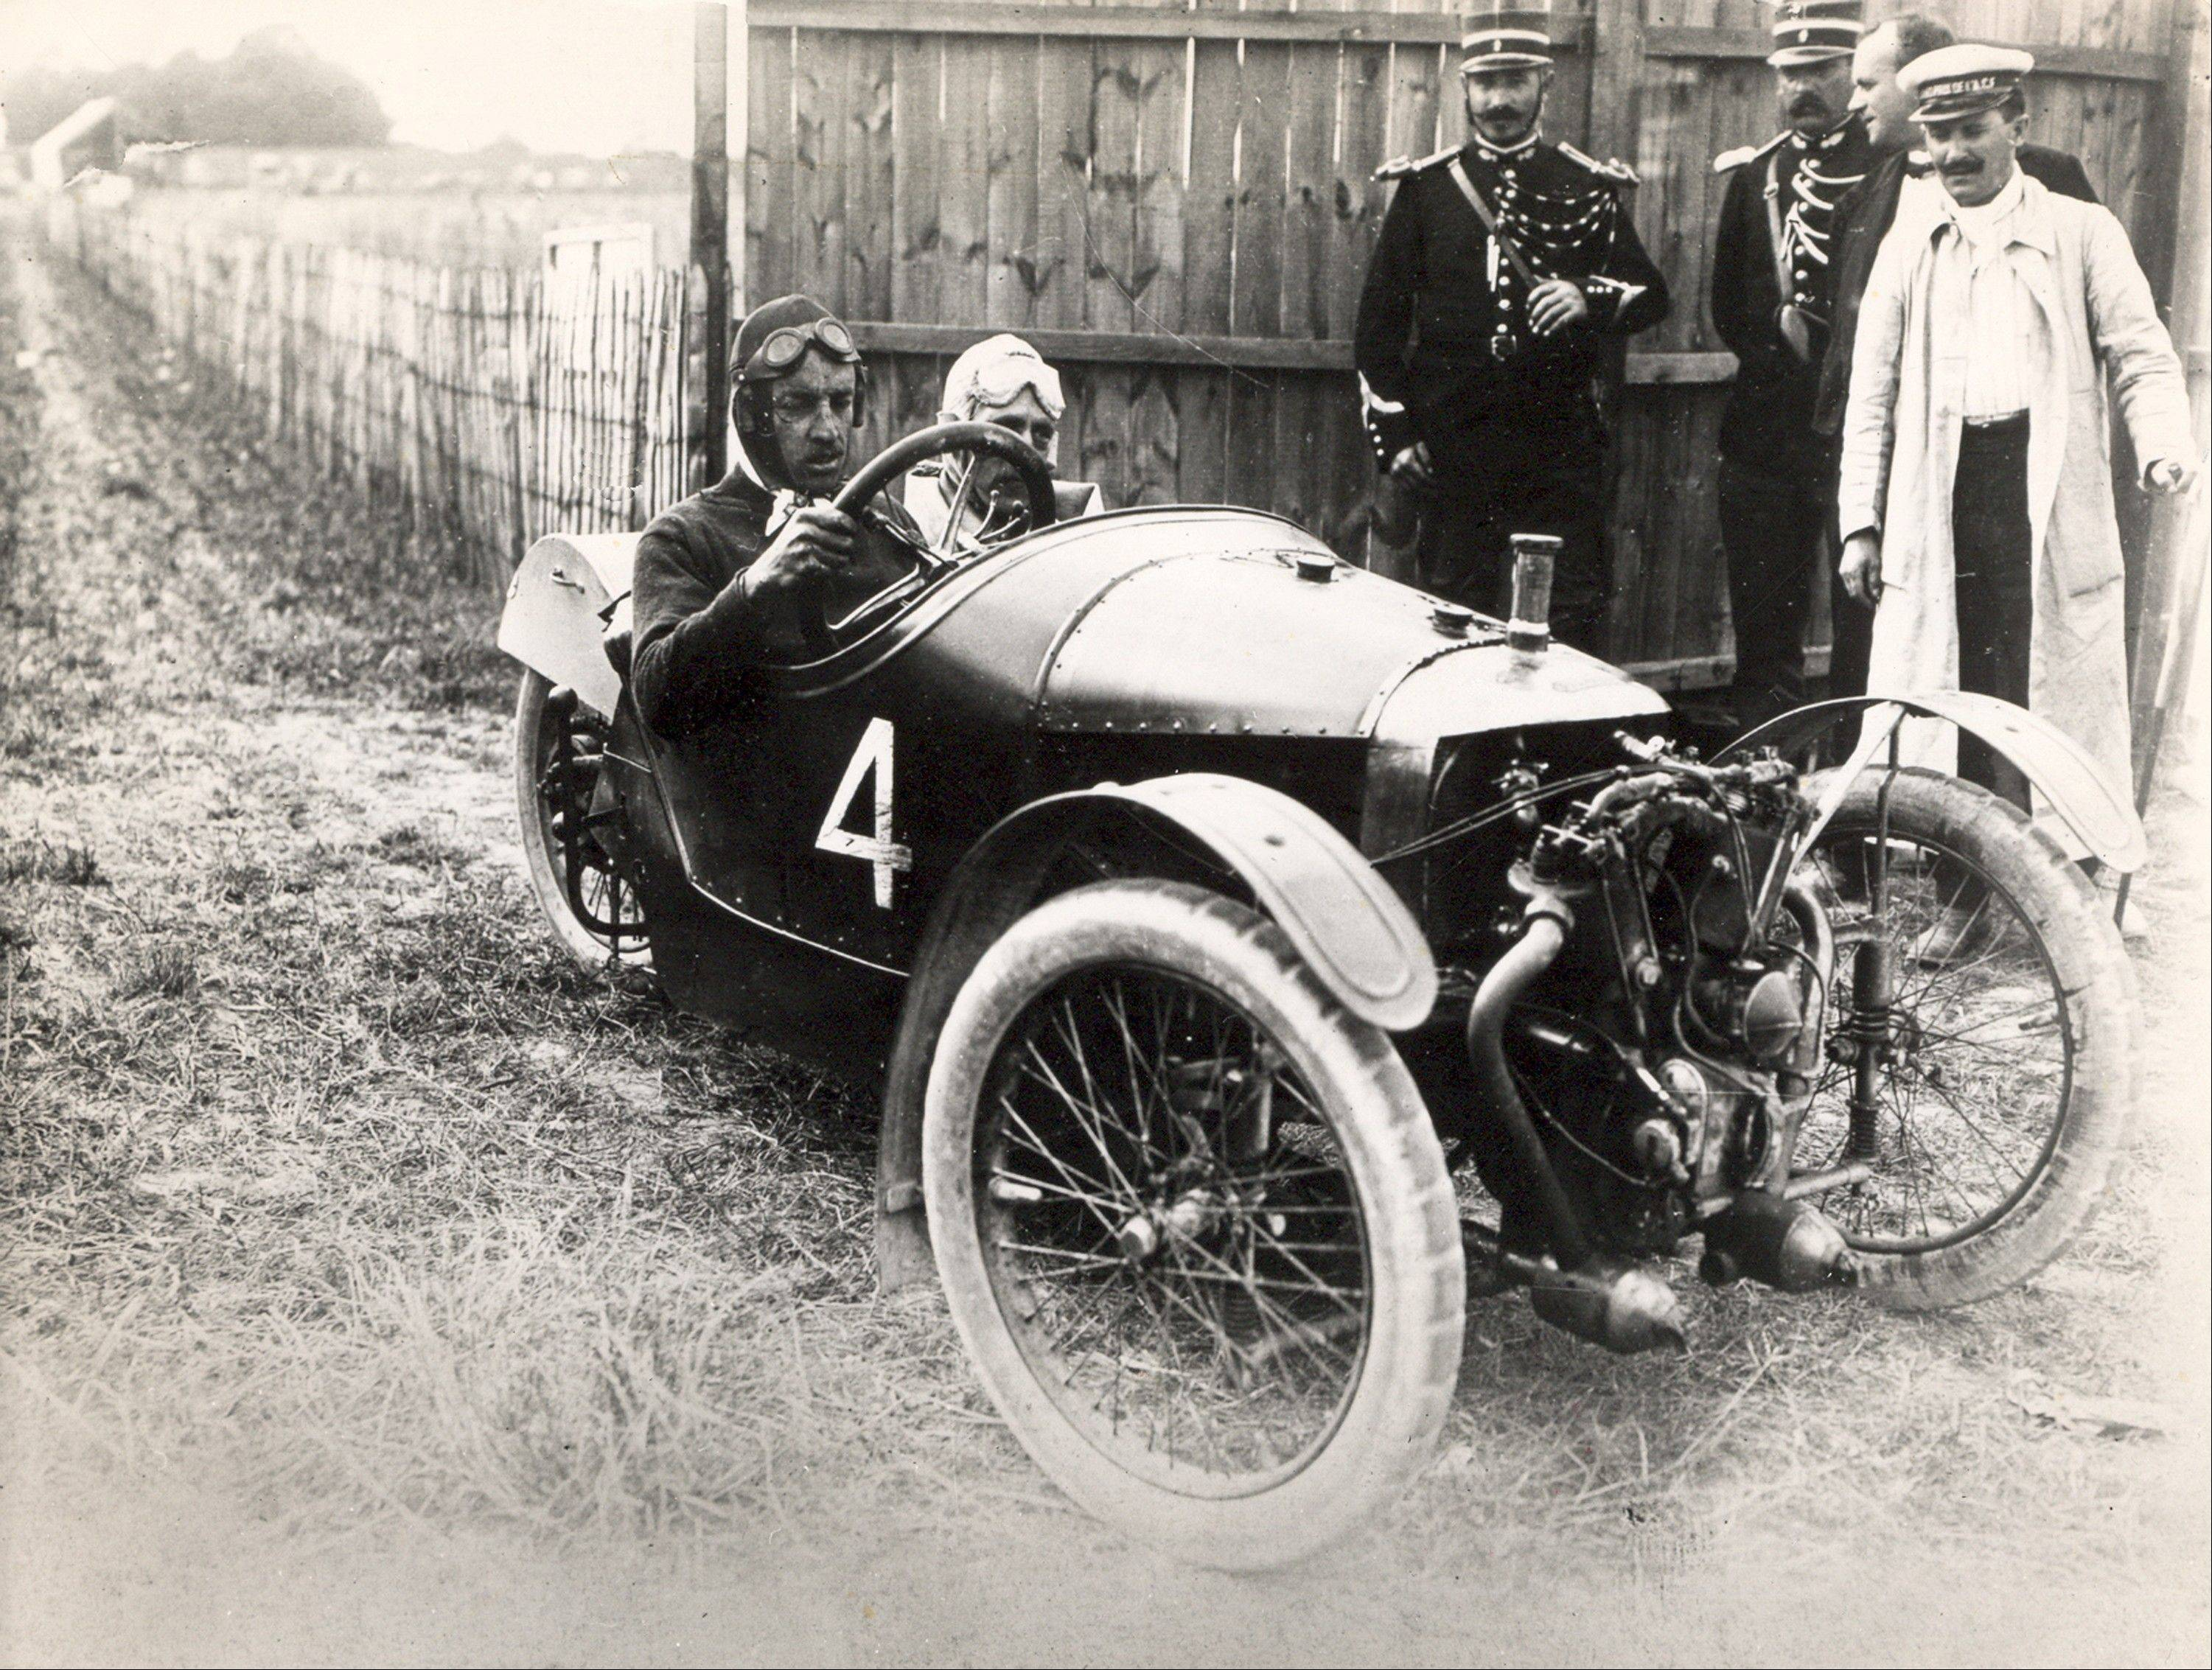 Morgan Motor Co. began producing three-wheeled cars in 1910, and they became favorites of racing enthusiasts.